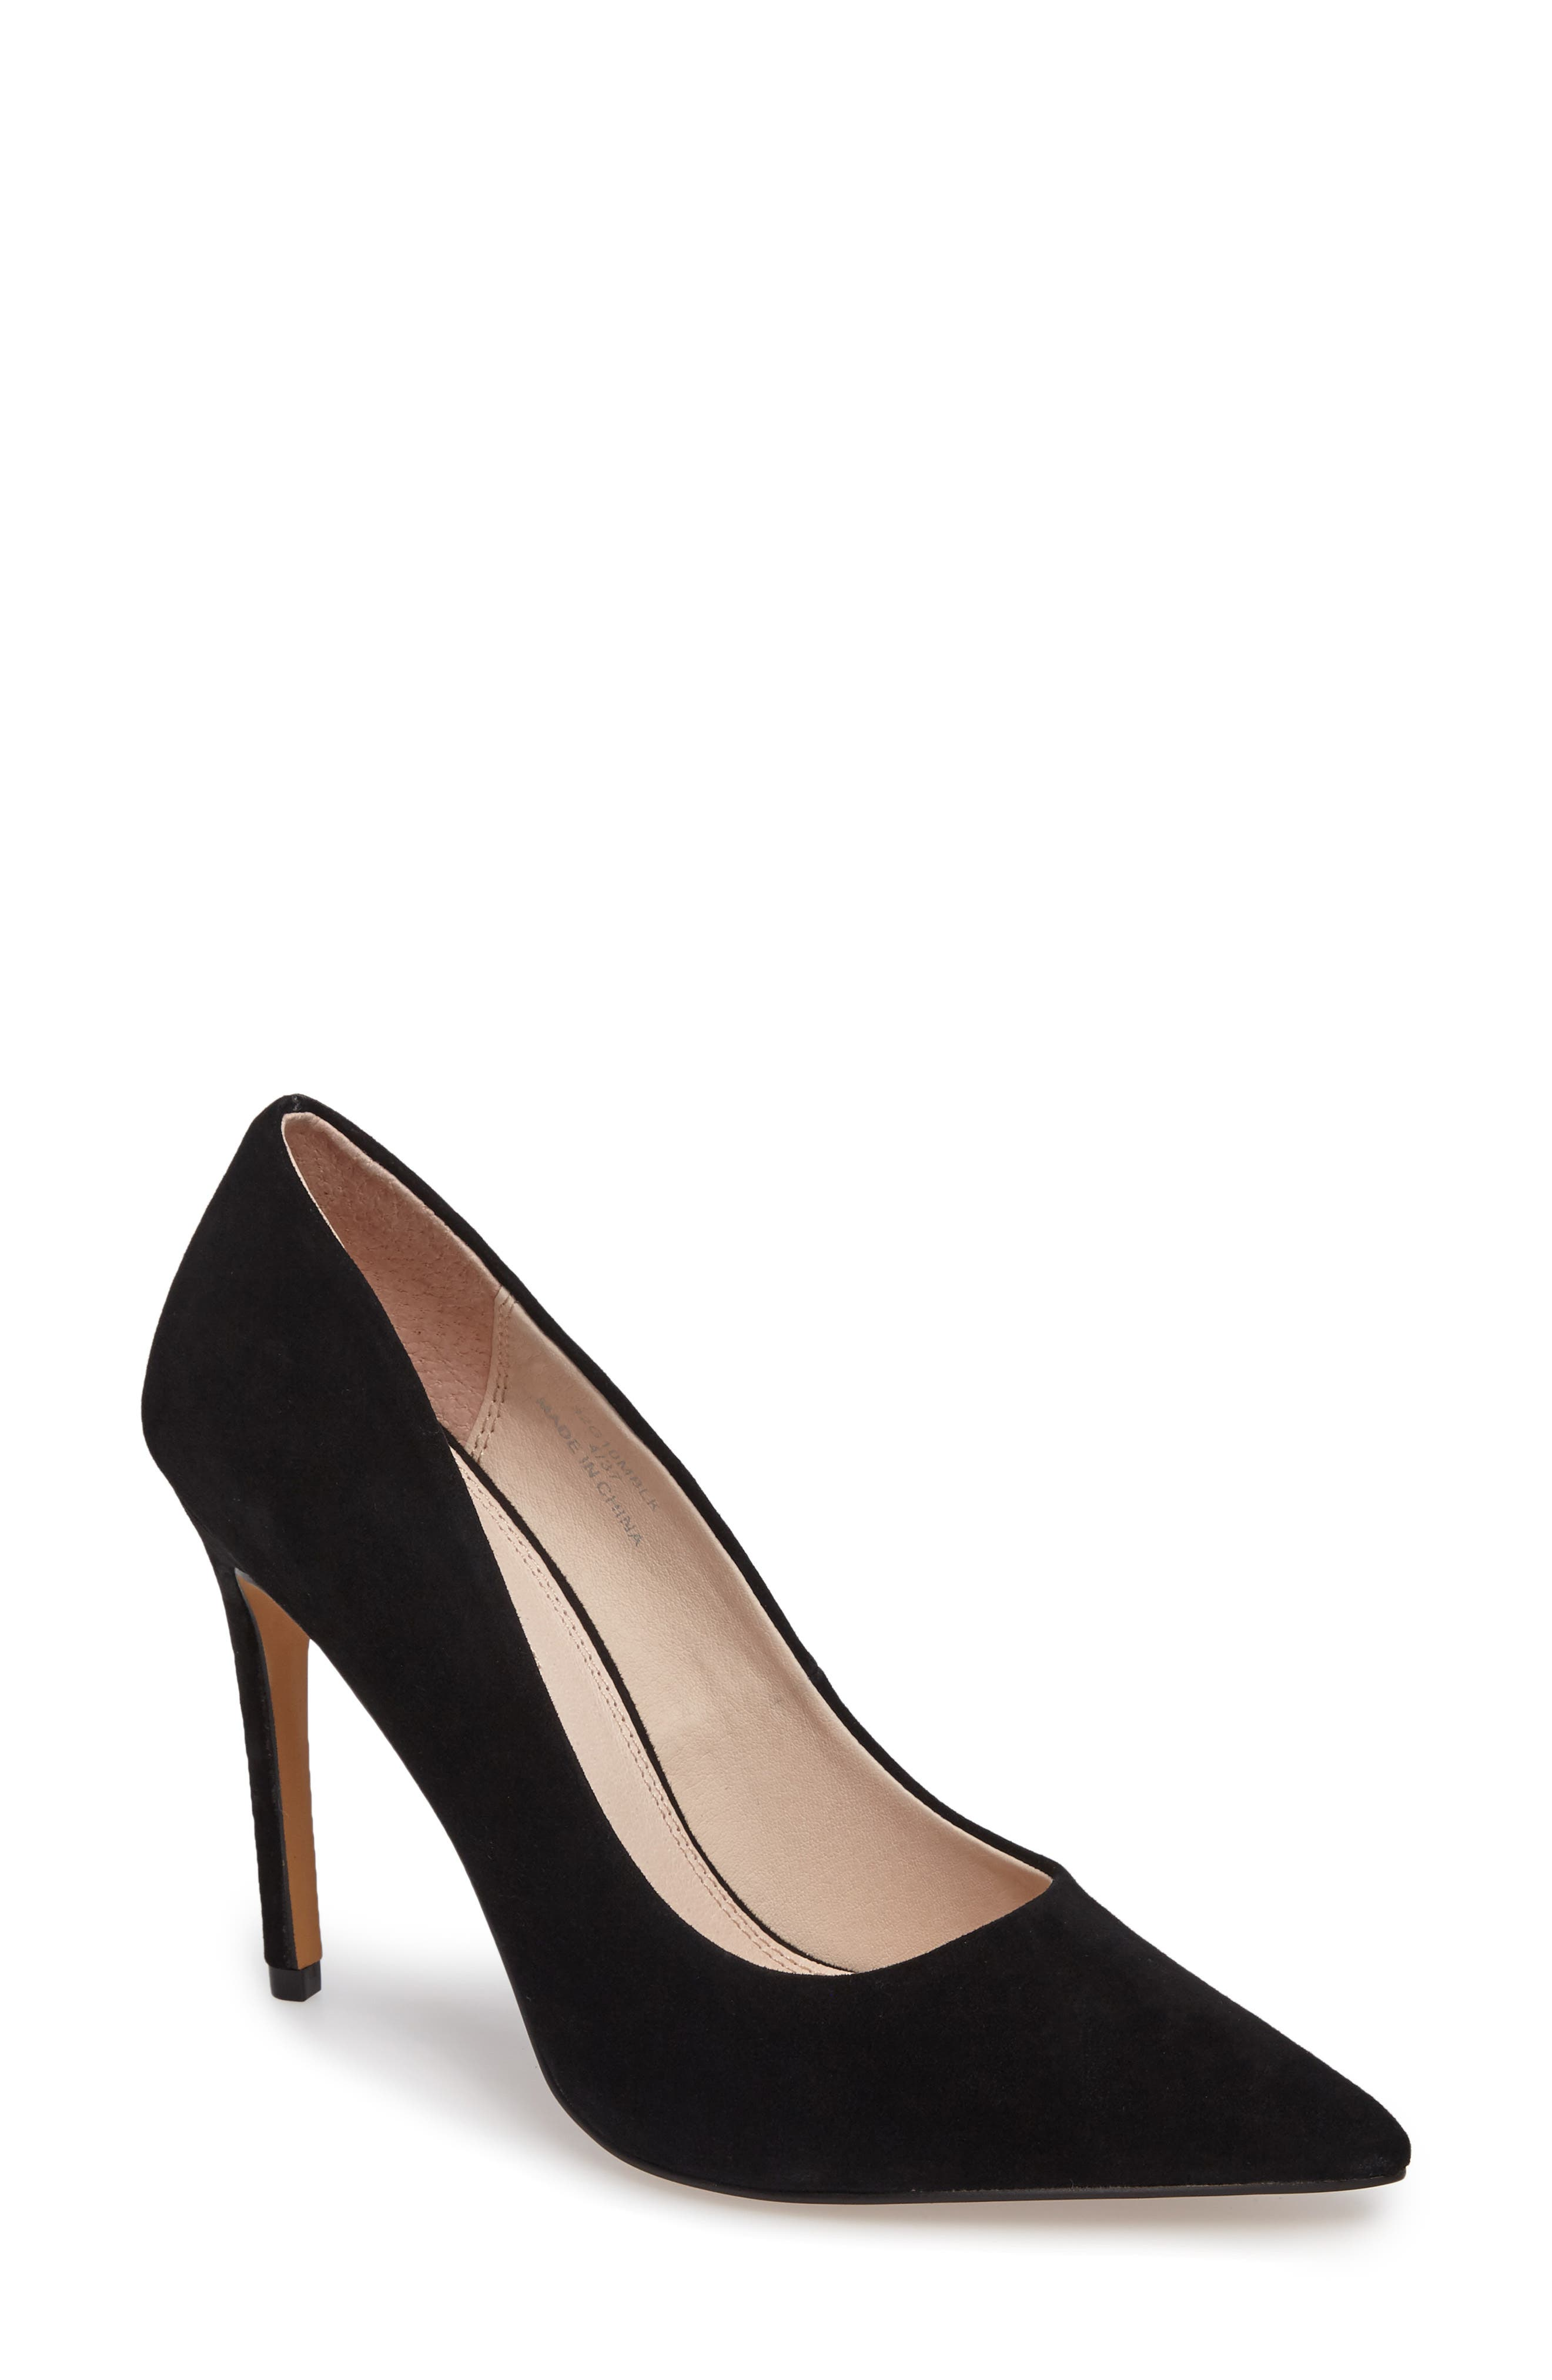 TOPSHOP,                             Grammer Pointy Toe Pump,                             Main thumbnail 1, color,                             001